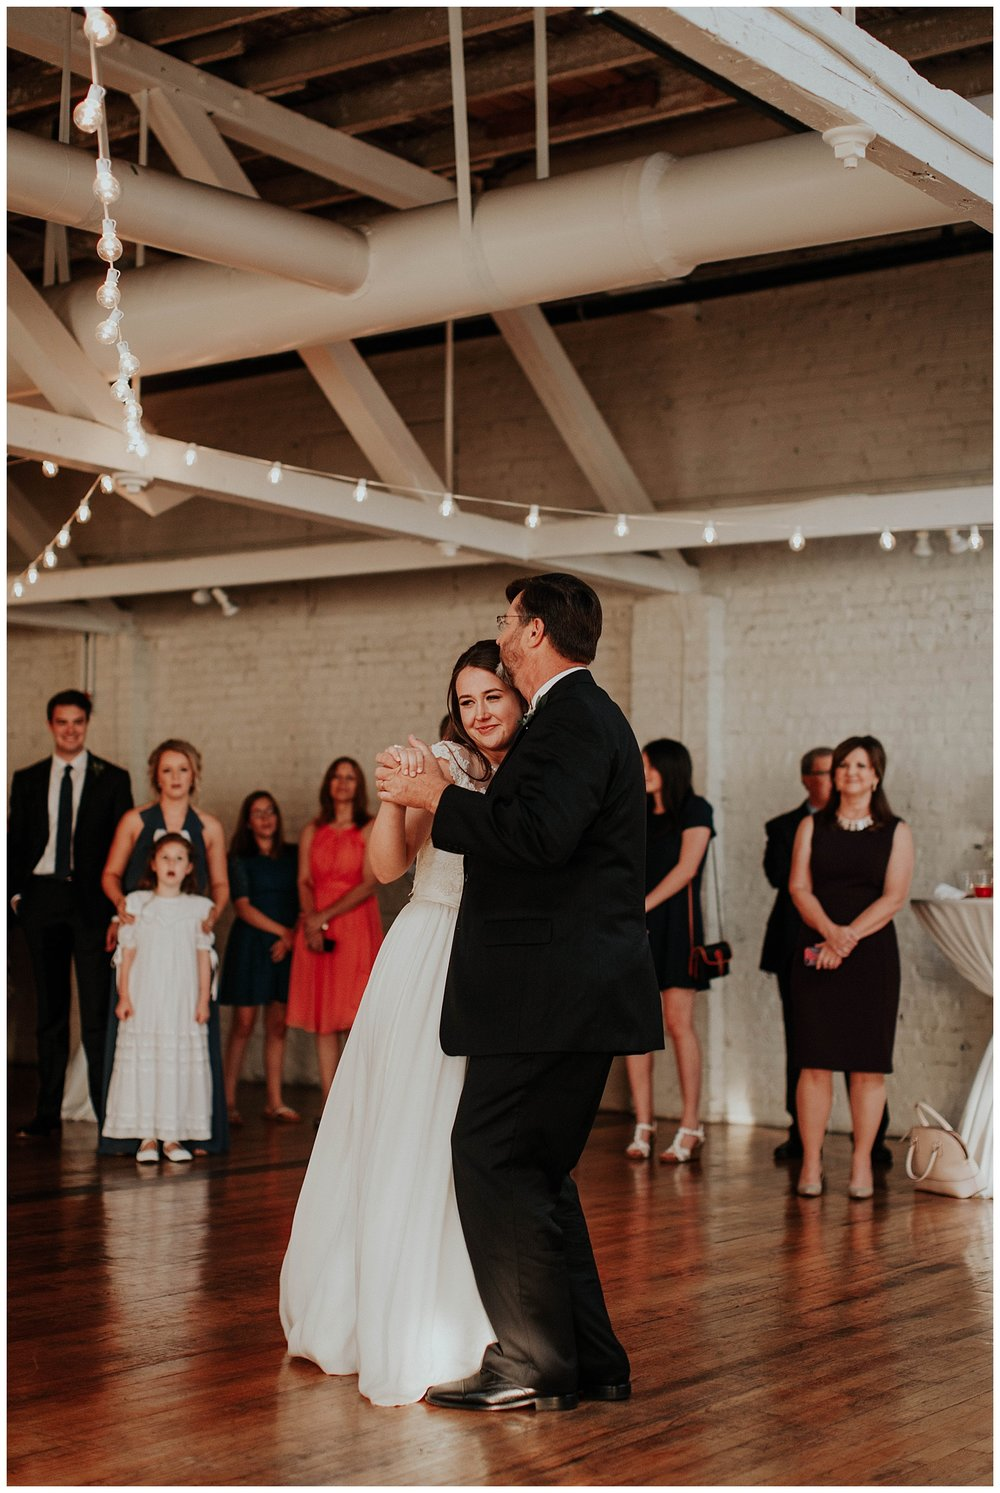 Madalynn Young Photography | Sarah Catherine + Will | Bridge Street Gallery and Loft | Atlanta Wedding Photographer_0403.jpg